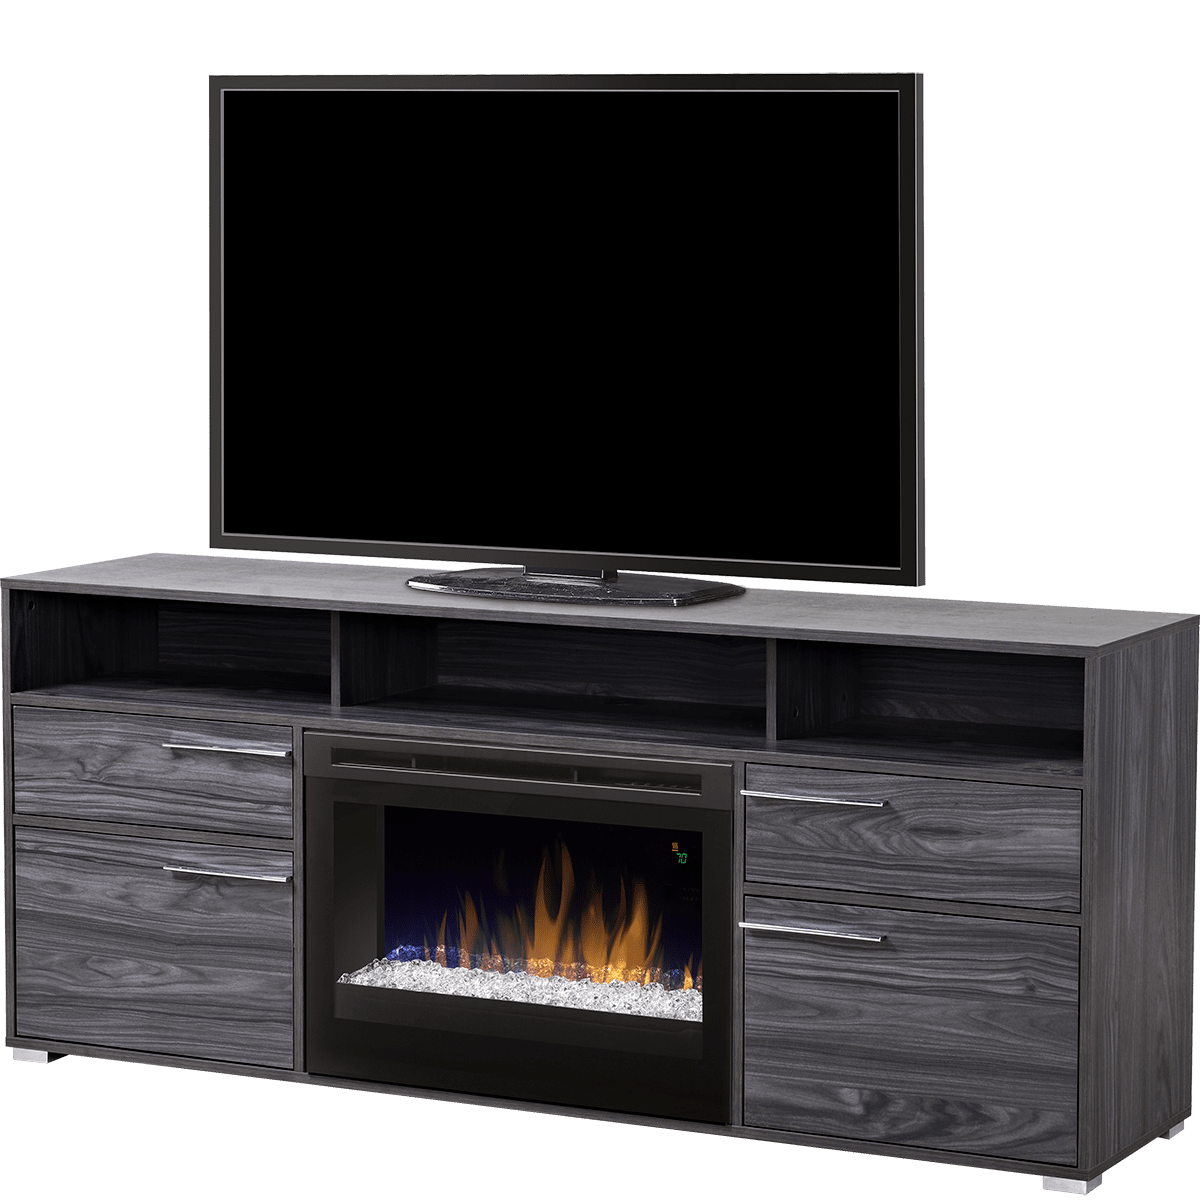 Prime Dimplex Sander Electric Fireplace Tv Stand Interior Design Ideas Oteneahmetsinanyavuzinfo